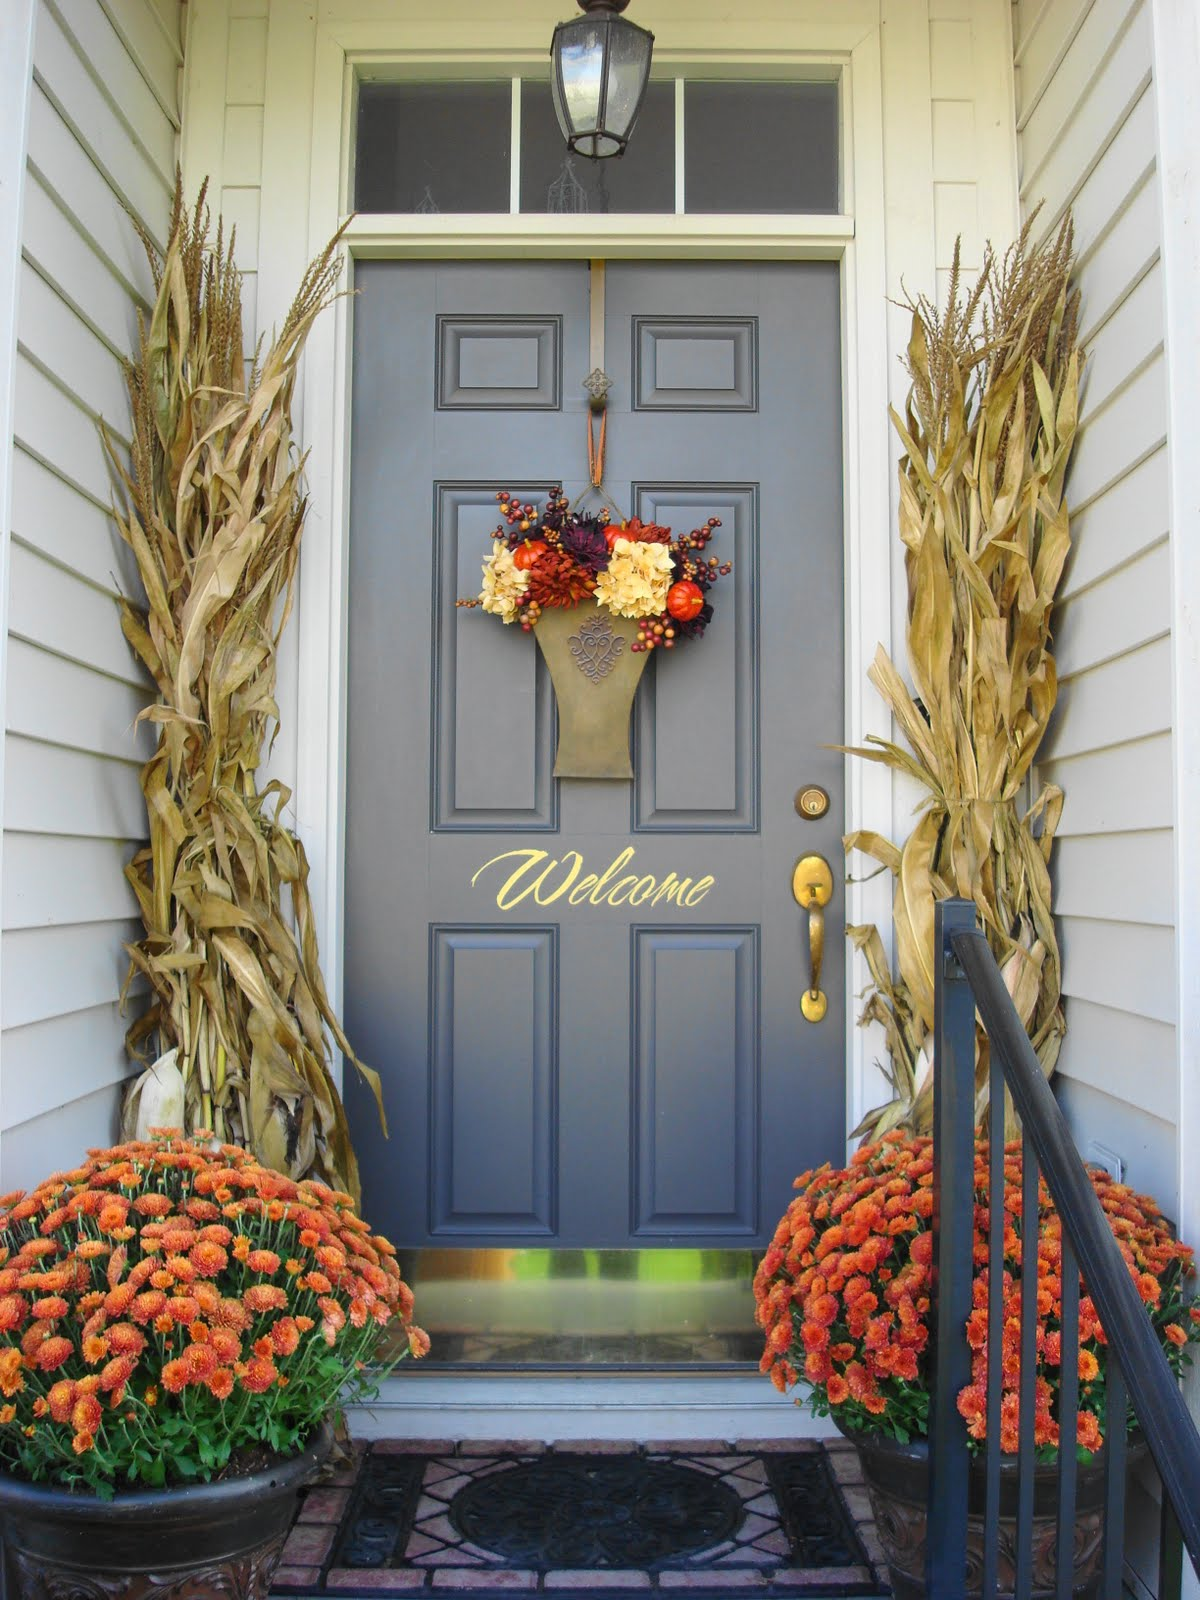 How To Warm Up Your Exterior Front Entrance For Fall